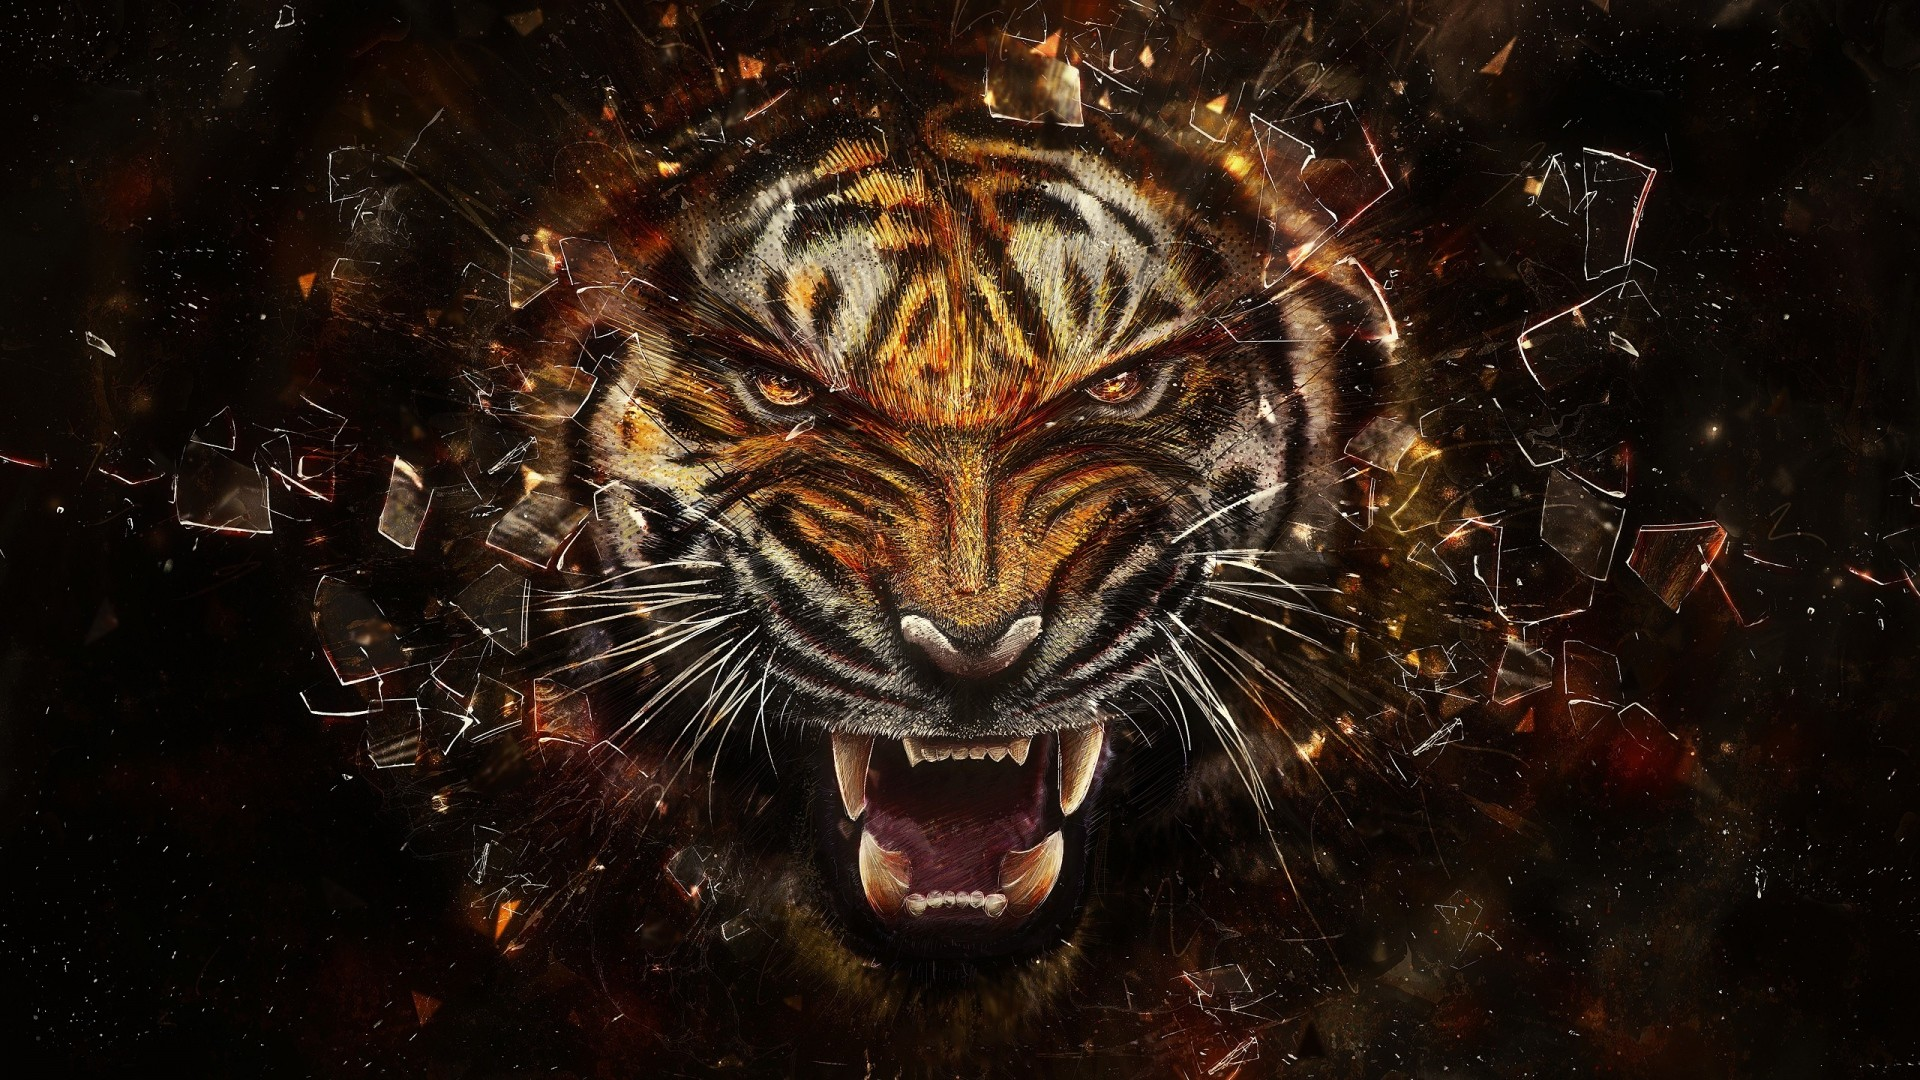 1920x1080 Best 3d hd wallpapers tiger In Windows Wallpaper Themes with 3d hd  wallpapers tiger Download HD